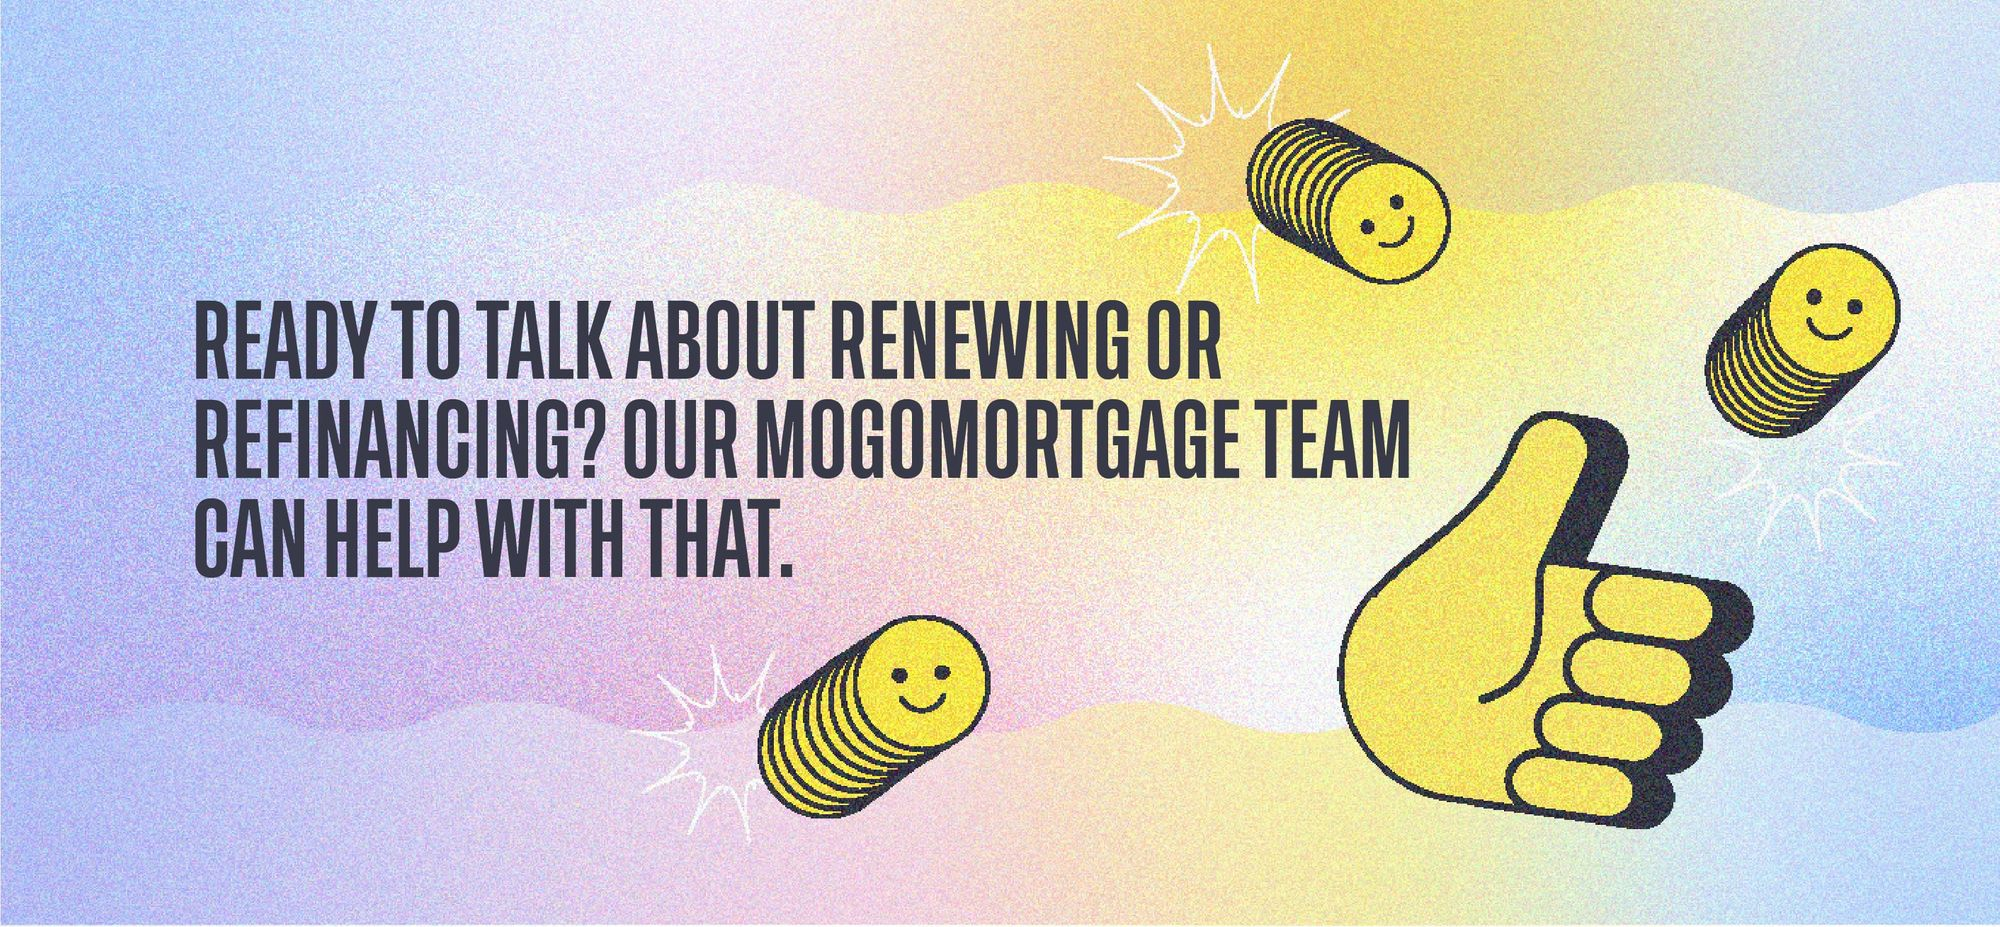 Ready to talk about renewing or refinancing? Our MogoMortgage team can help with that.